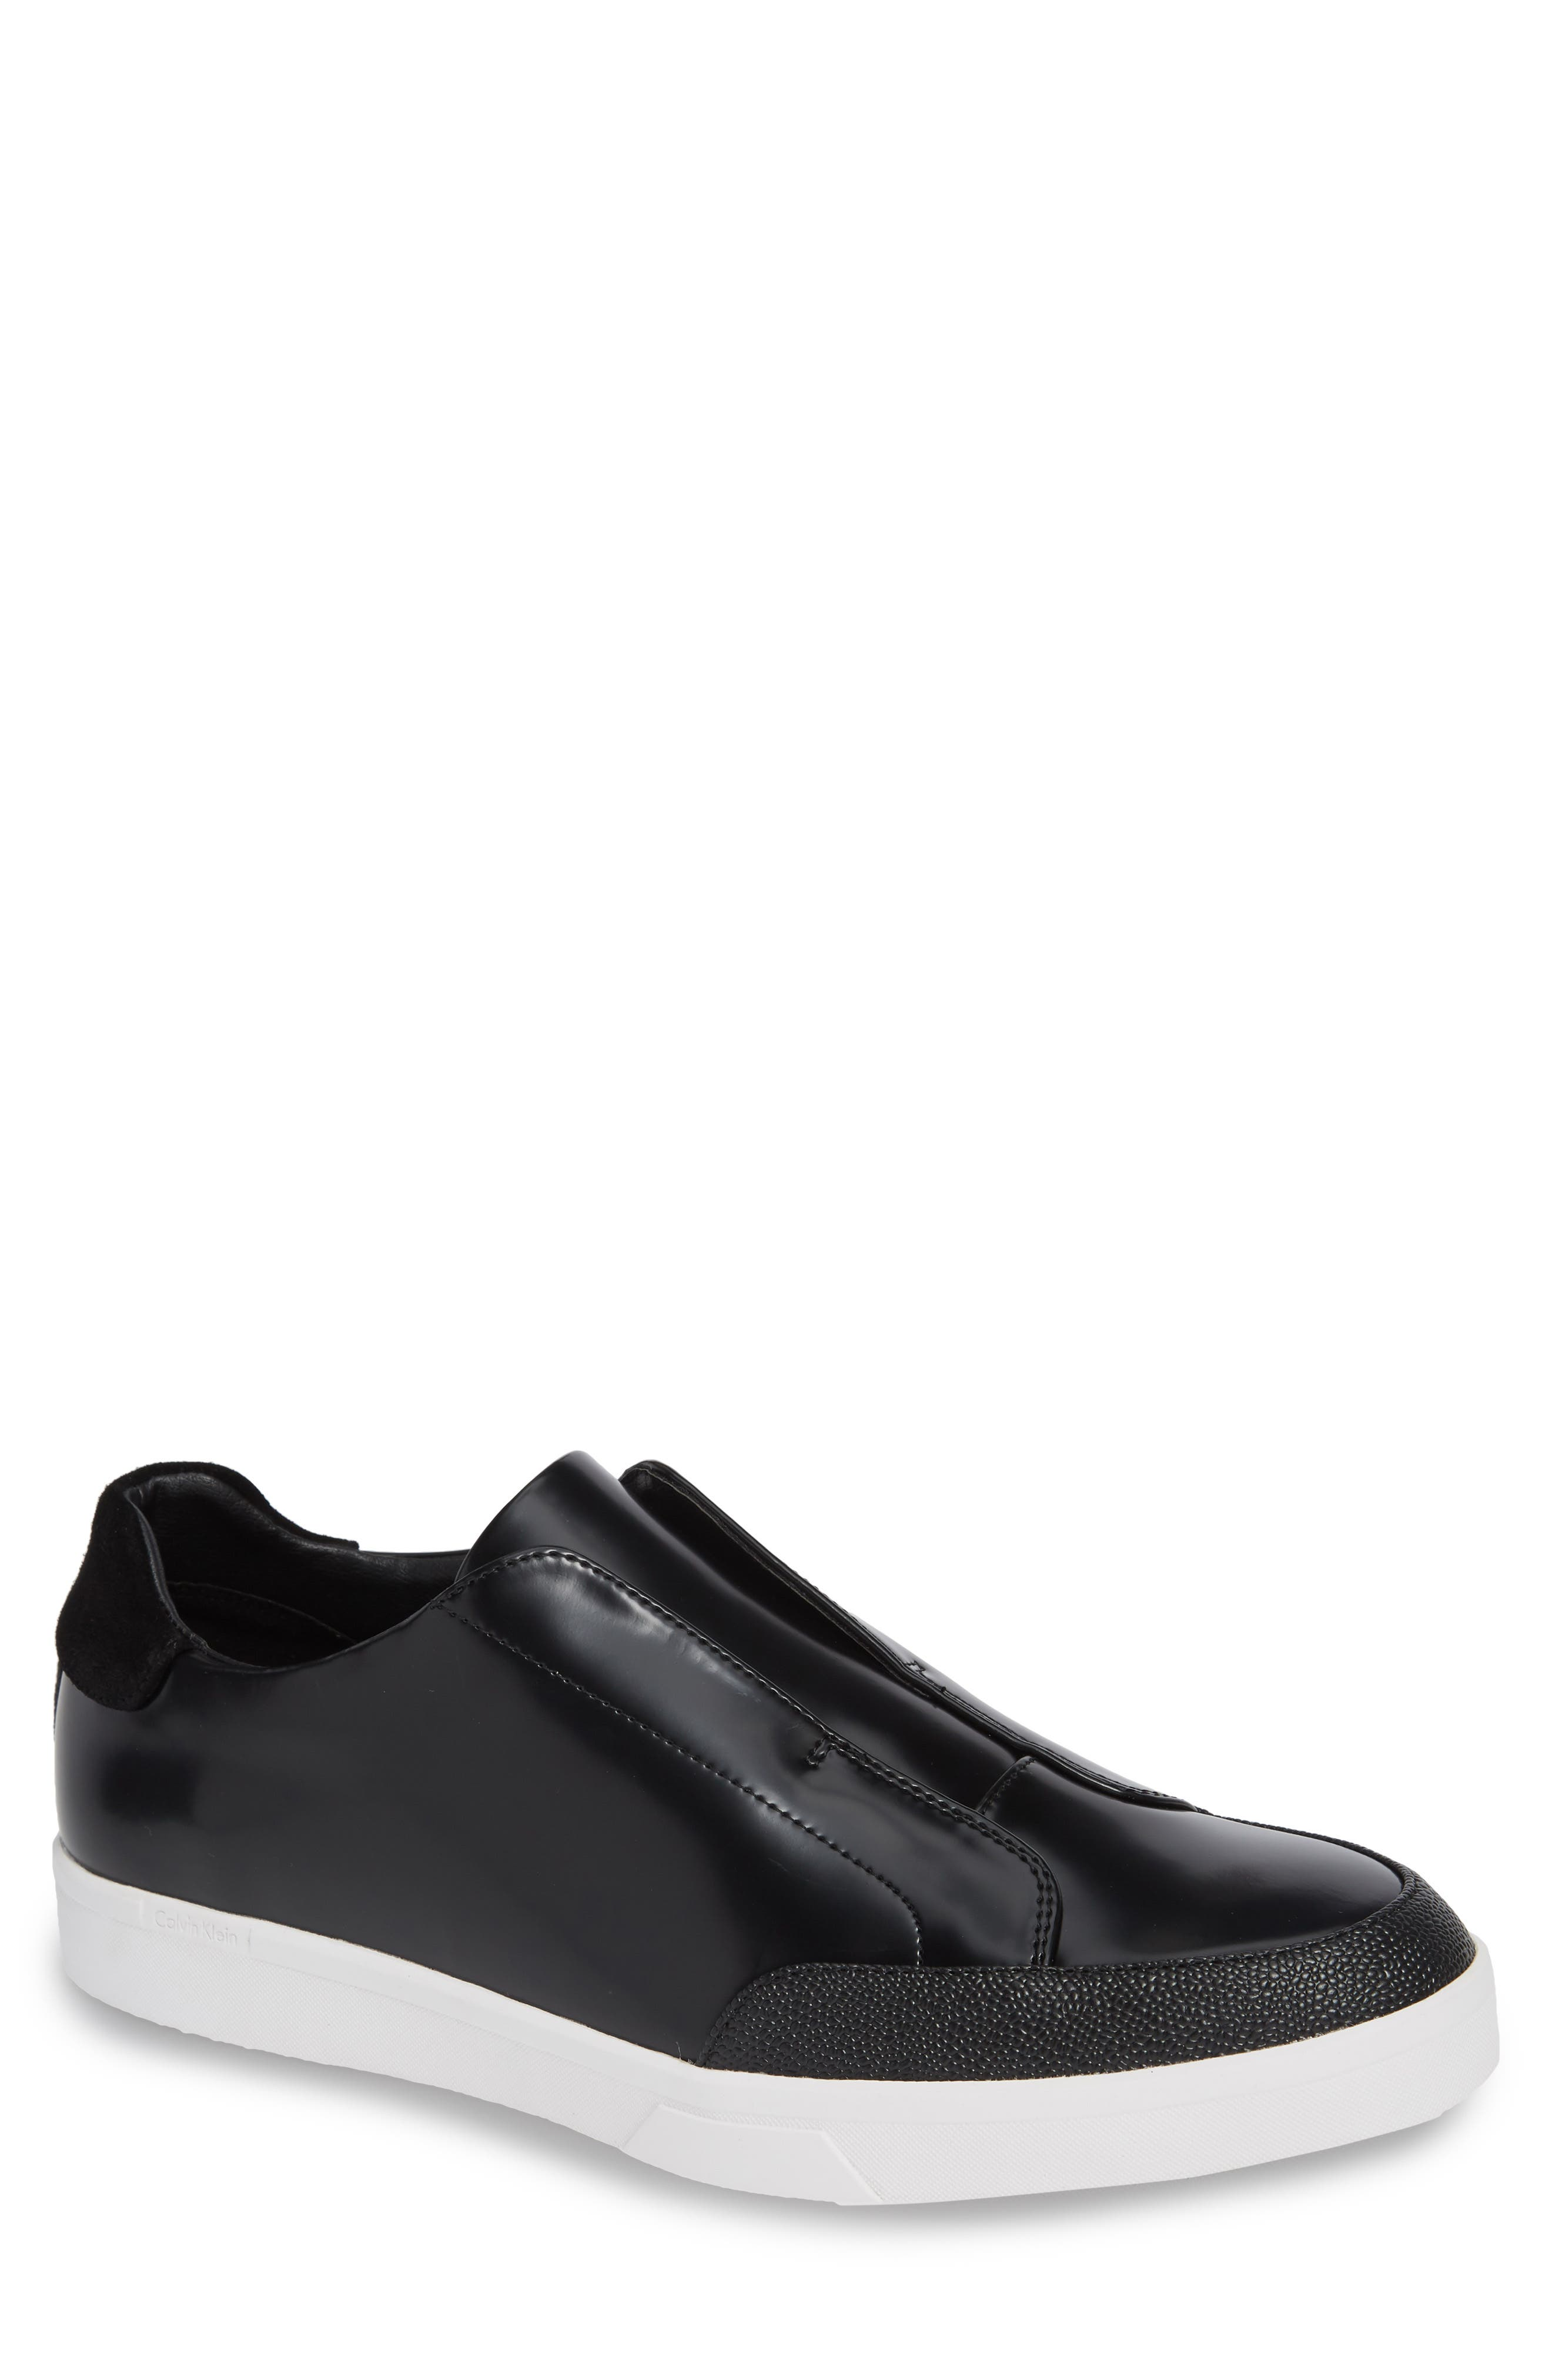 Immanuel Slip-On Sneaker,                         Main,                         color, BLACK LEATHER